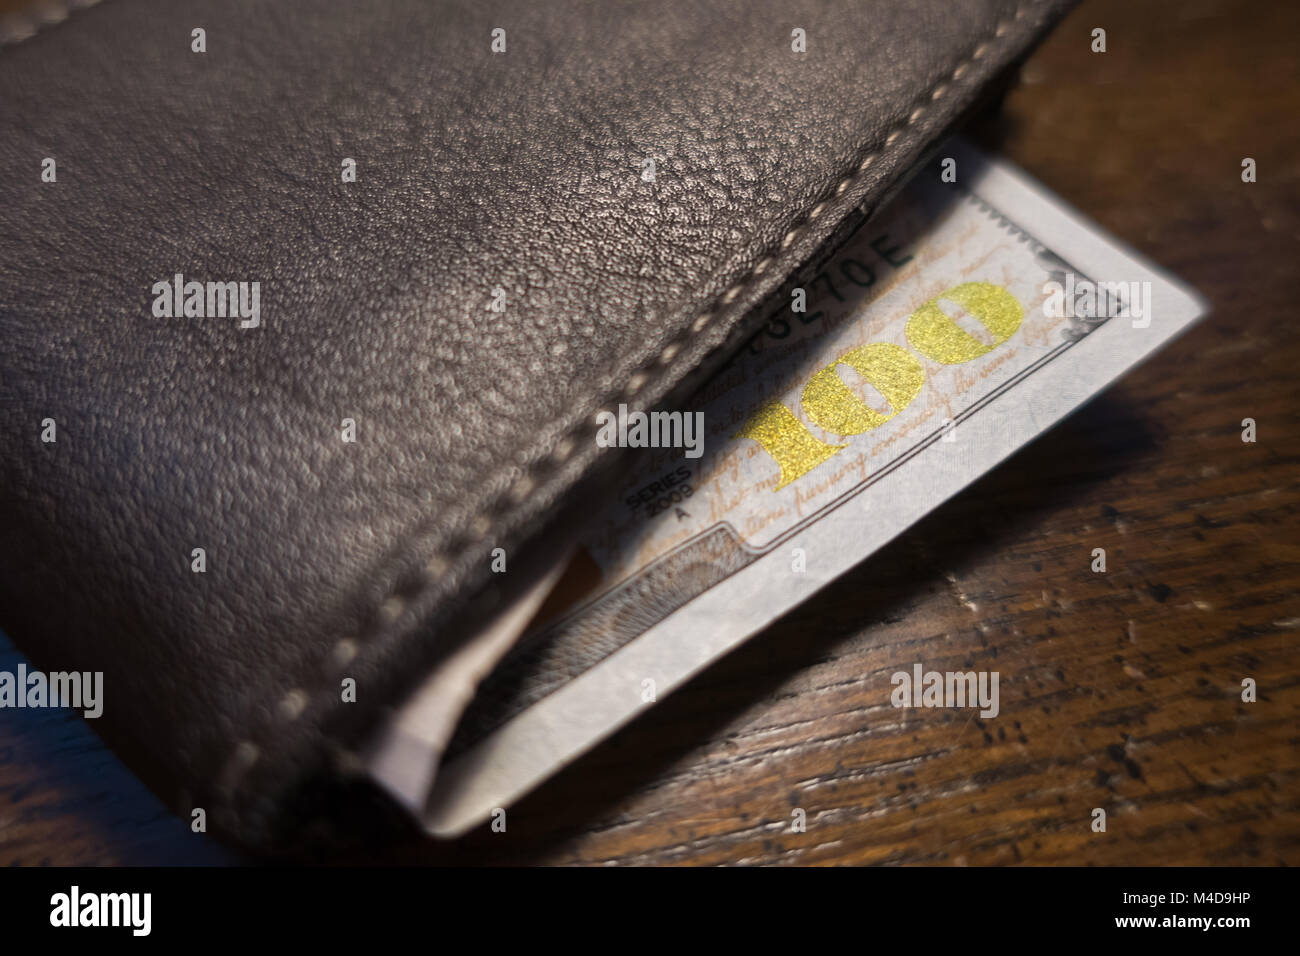 A one hundred dollar bill sticking out of a brown leather bi fold wallet. - Stock Image